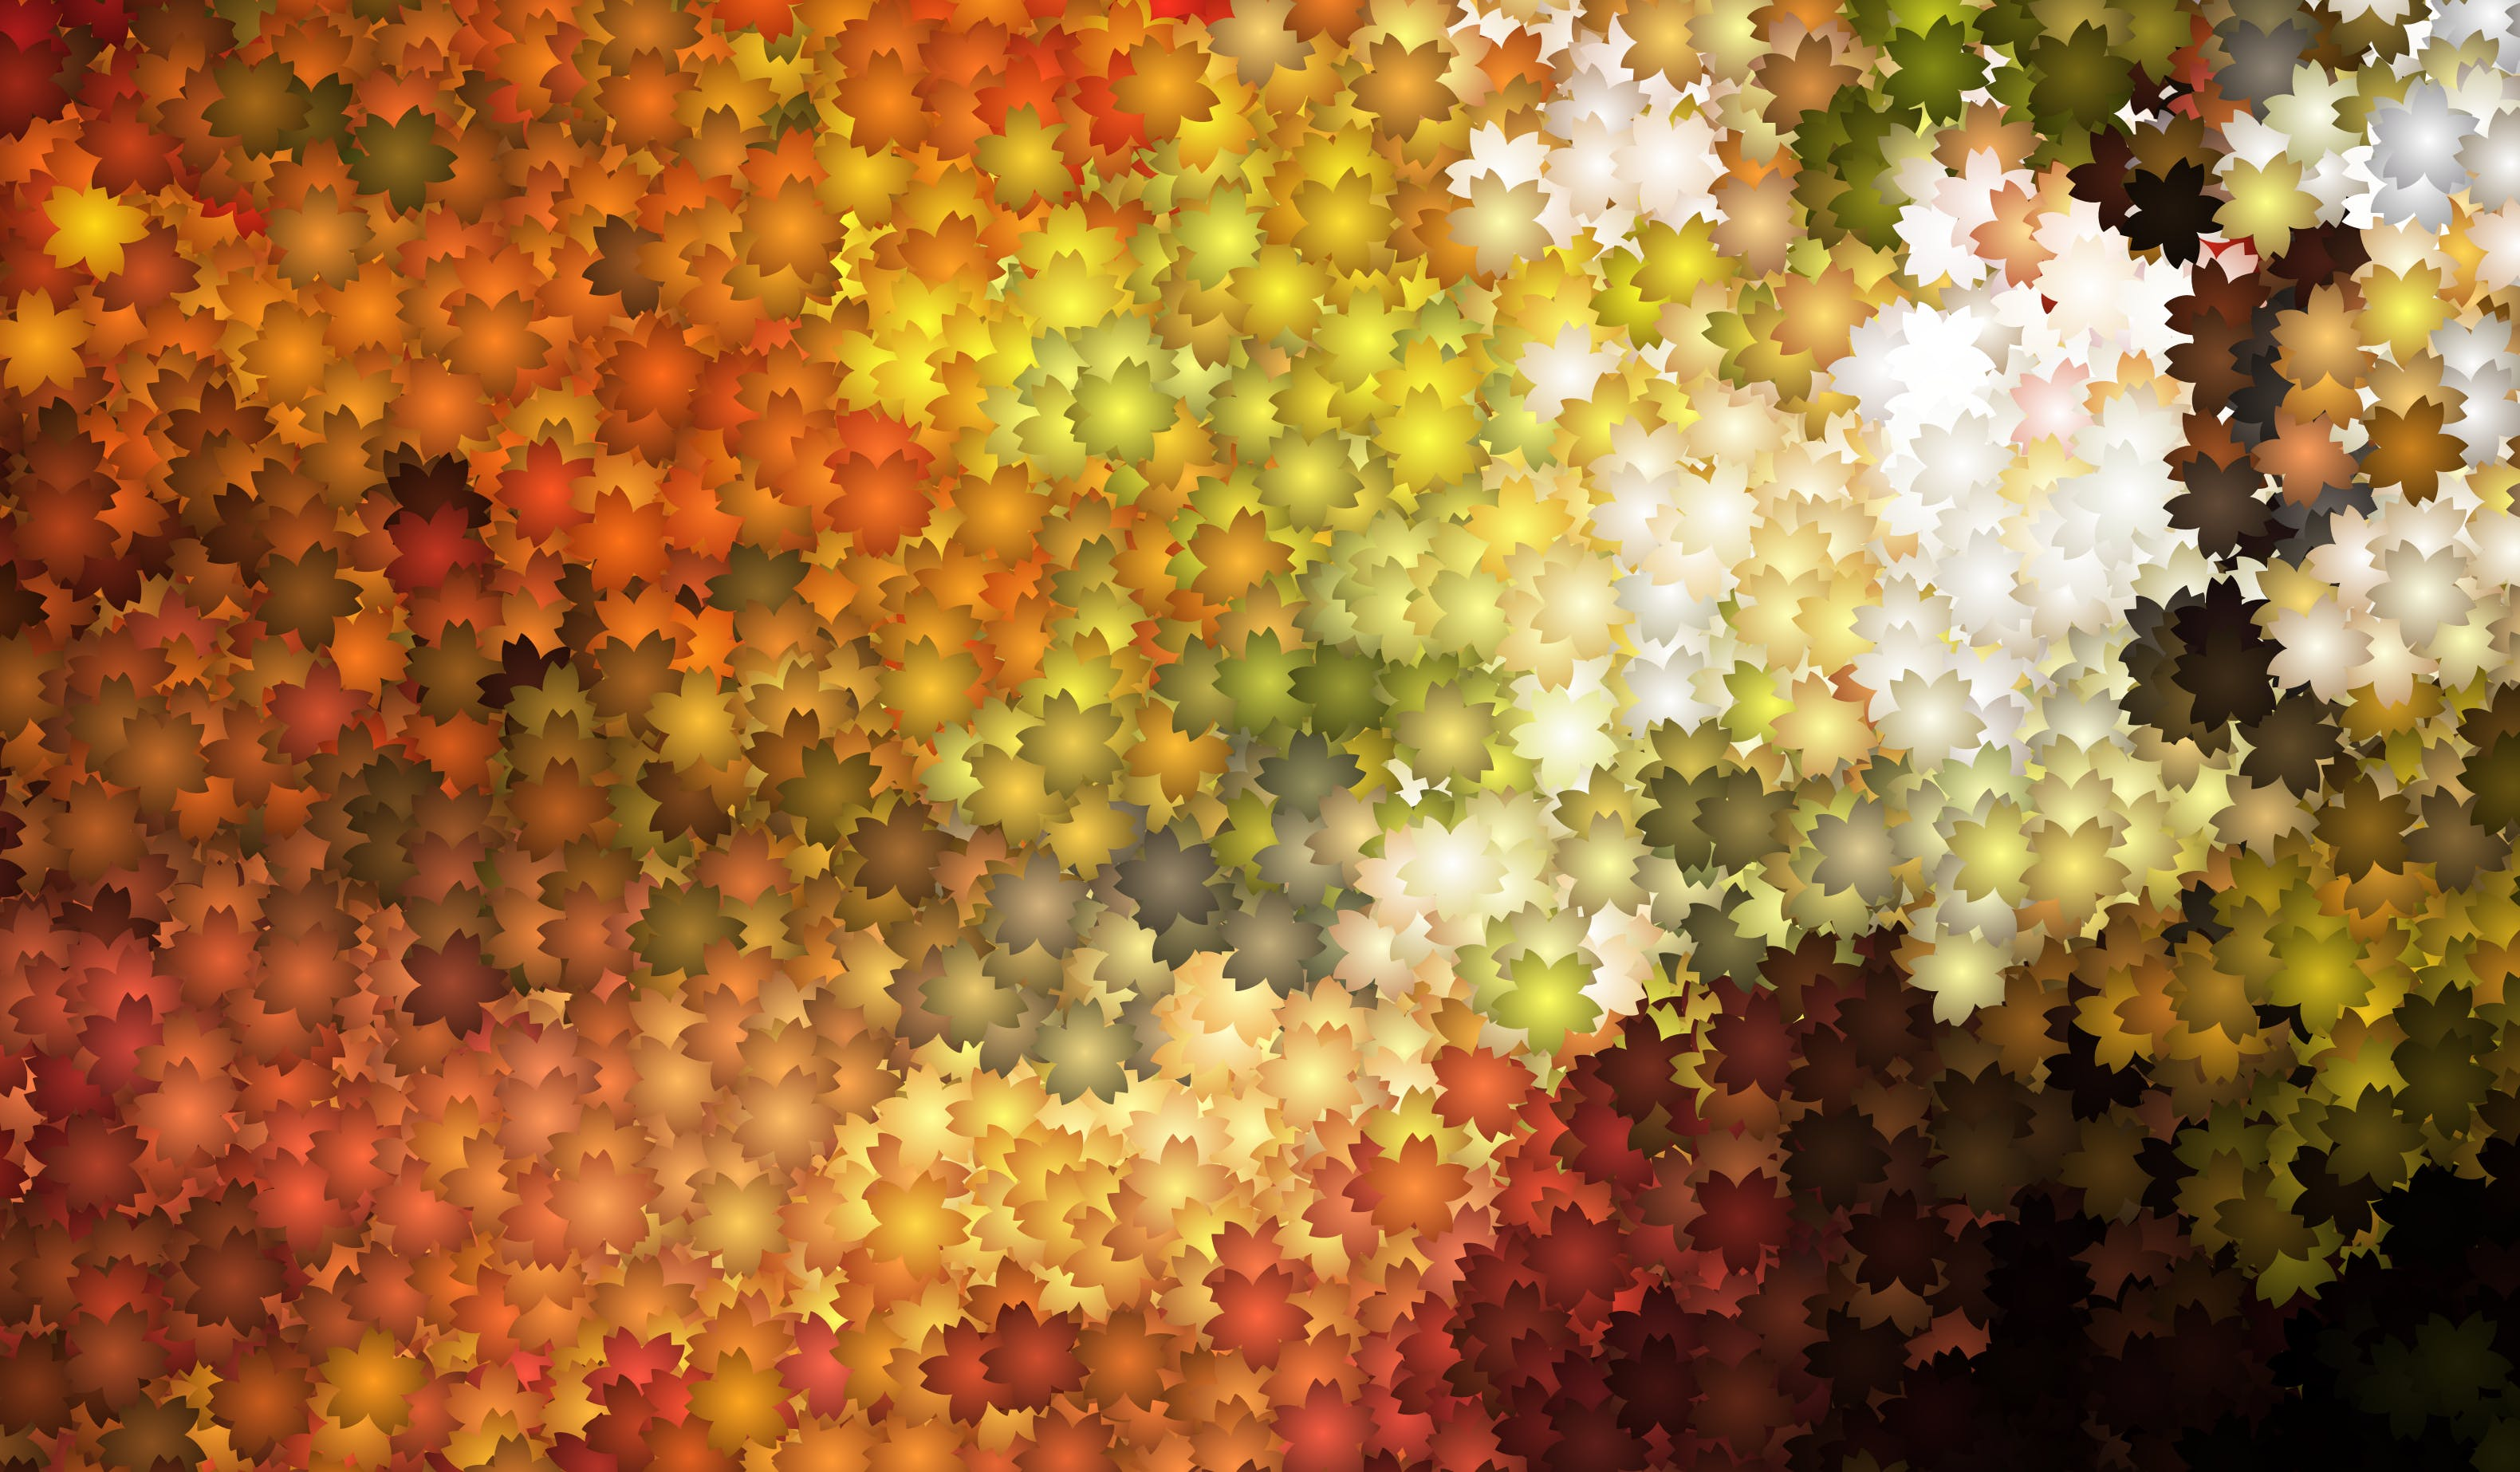 Free stock photo of abstract, art, autumn, background